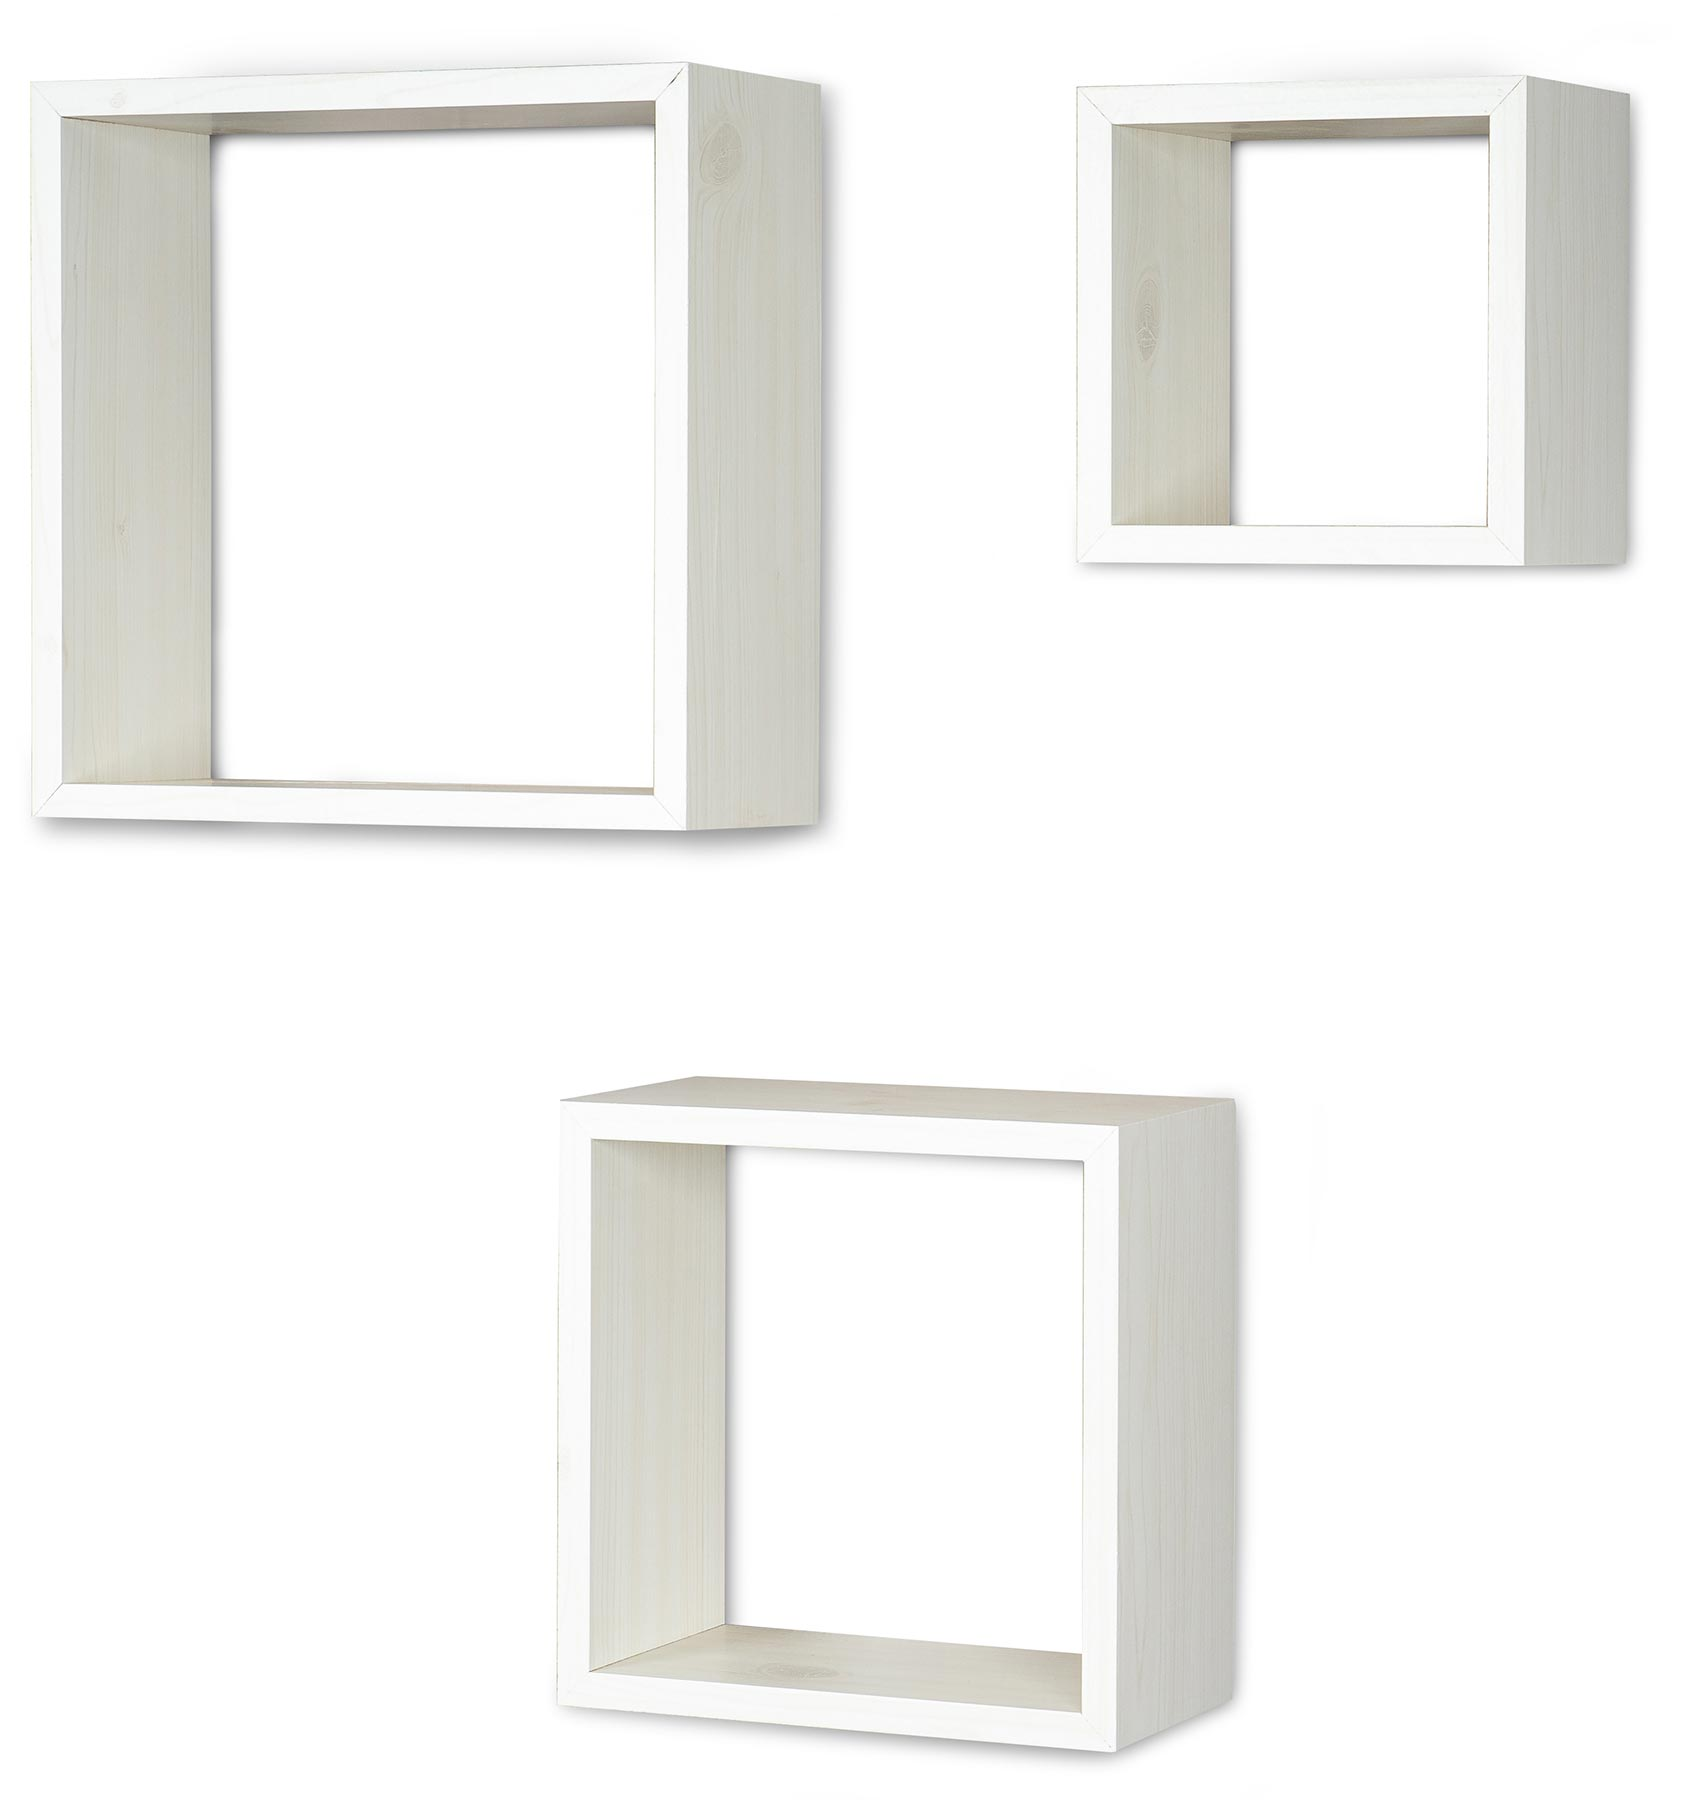 3er Set Cube Wandregal Regal 25cm 20cm 15cm Holz Ahorn Dekor Weiss